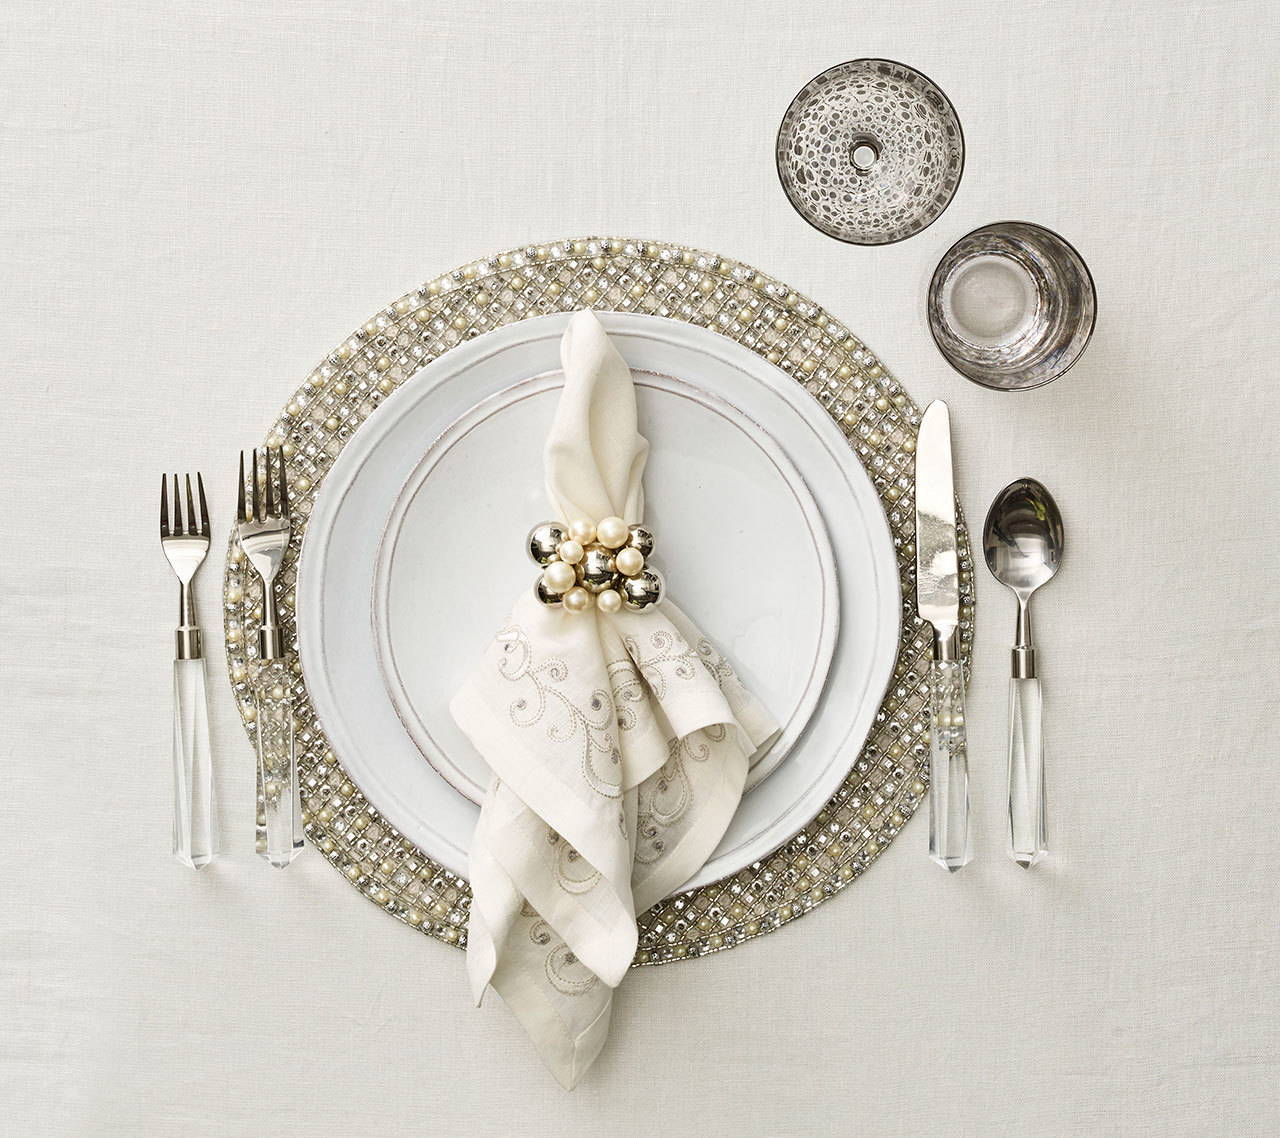 BRILLIANT PLACEMAT IN SILVER & CRYSTAL